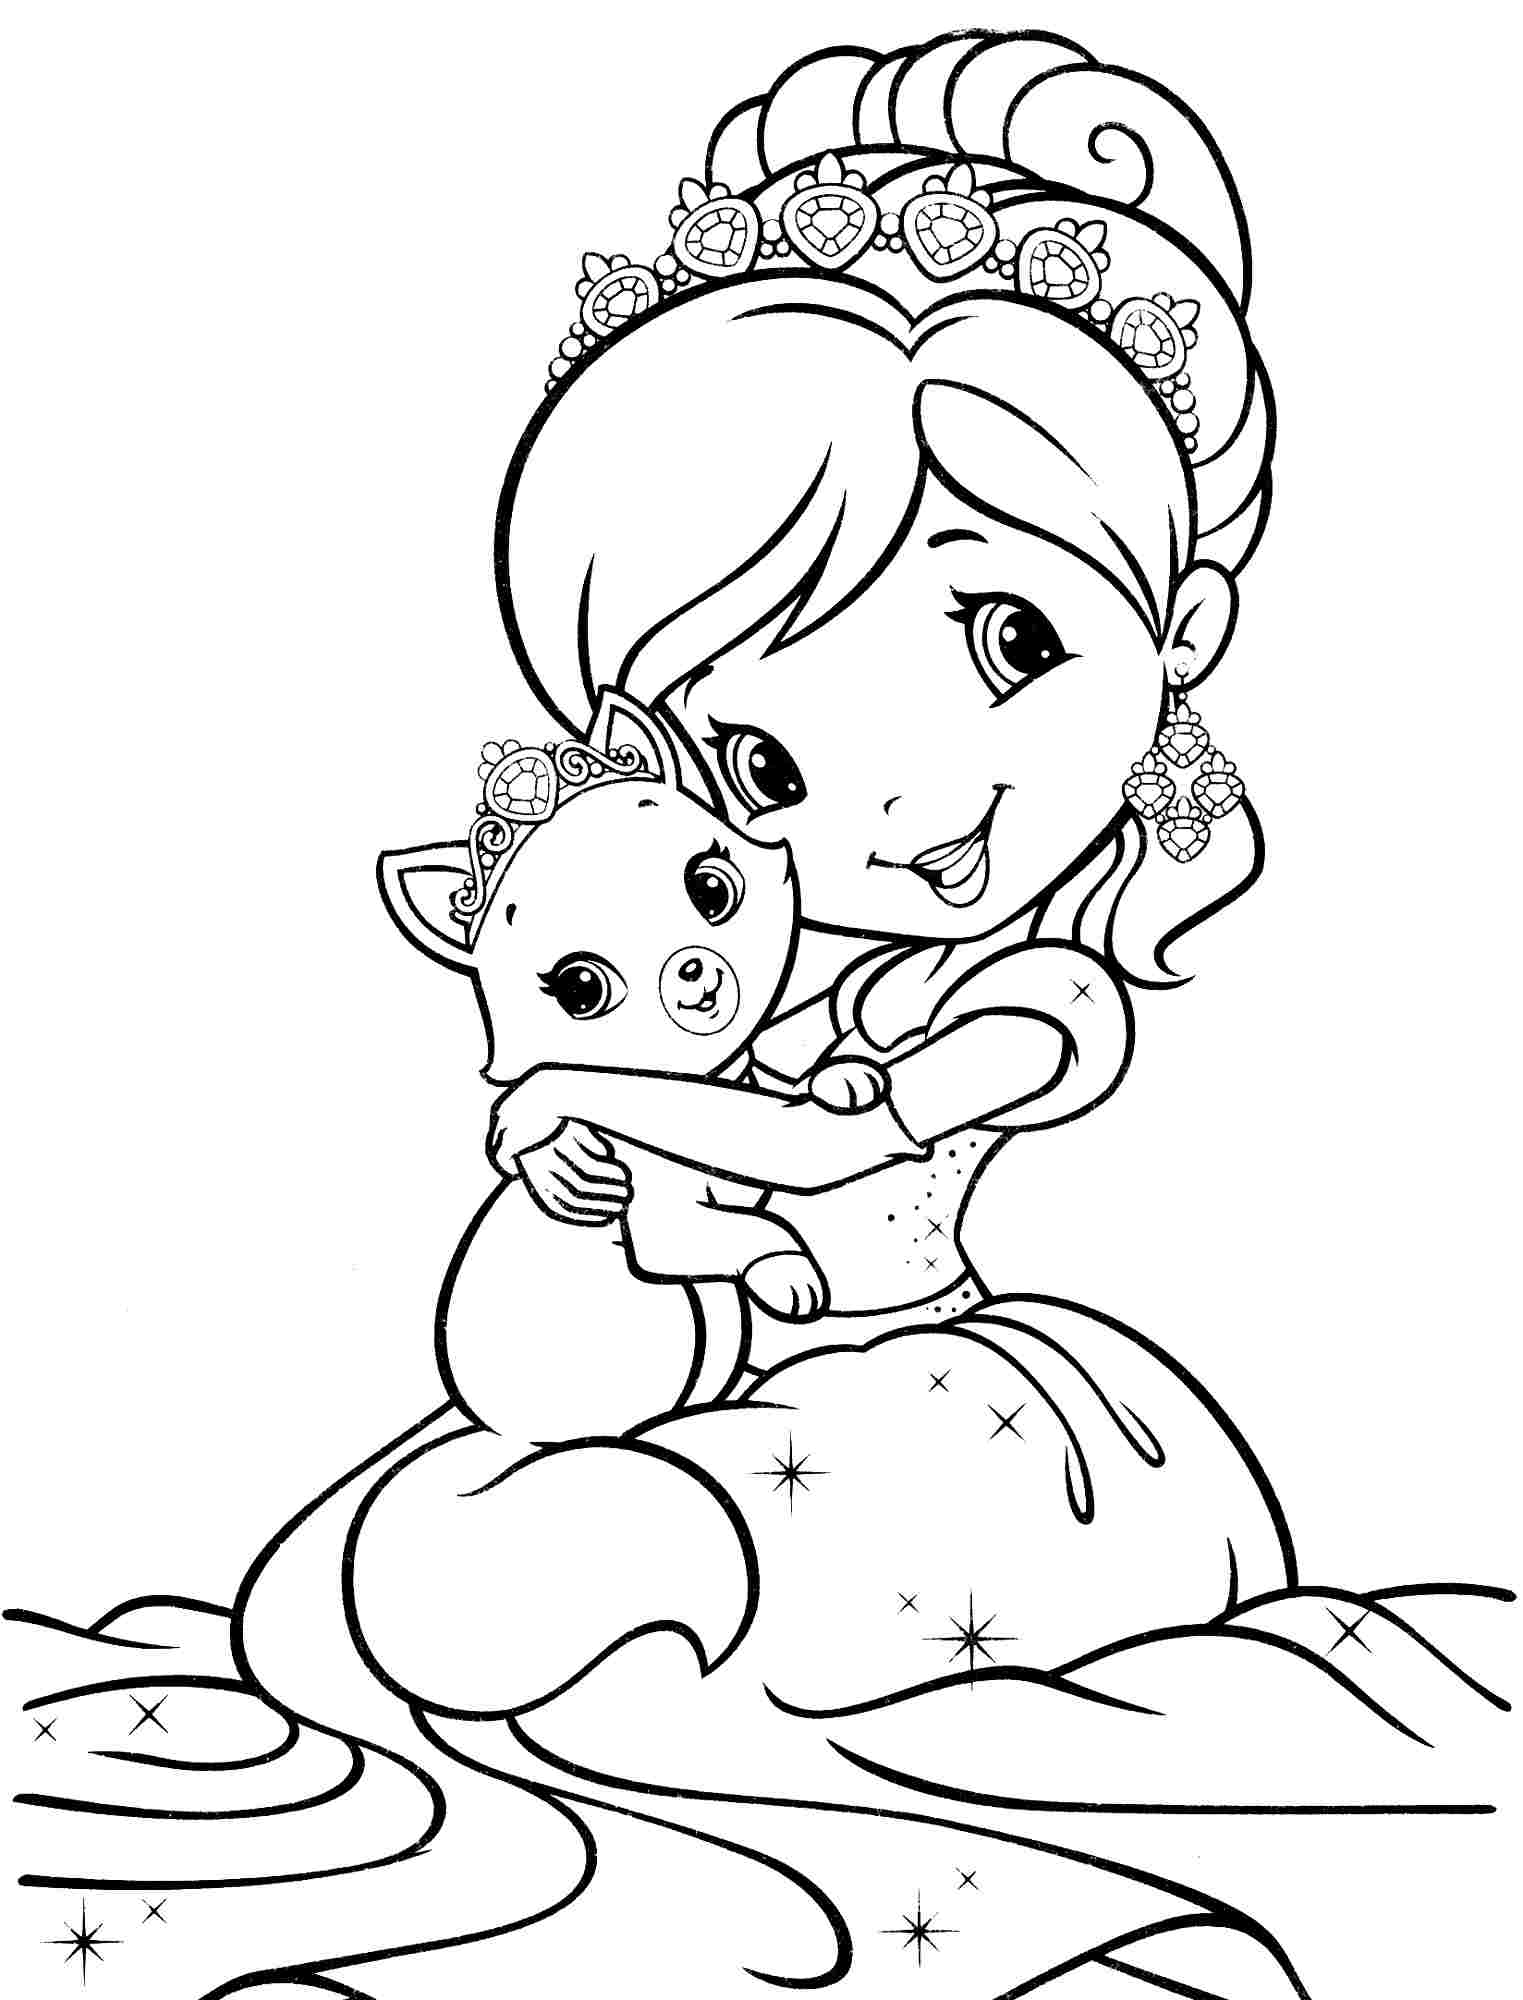 1523x2000 Strawberry Shortcake And All Friends Coloring Pages